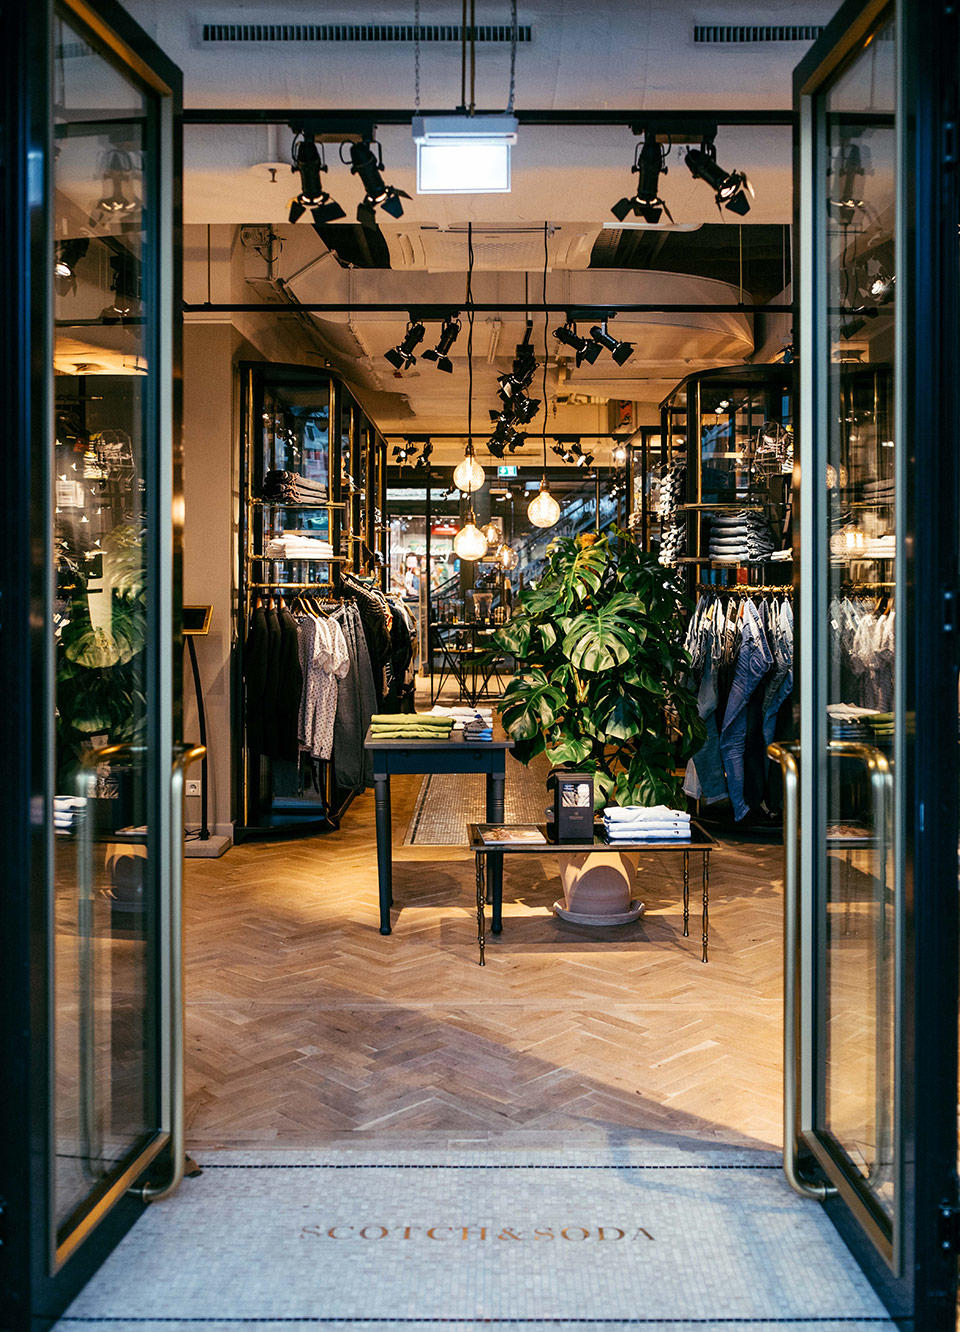 Scotch & Soda store façade